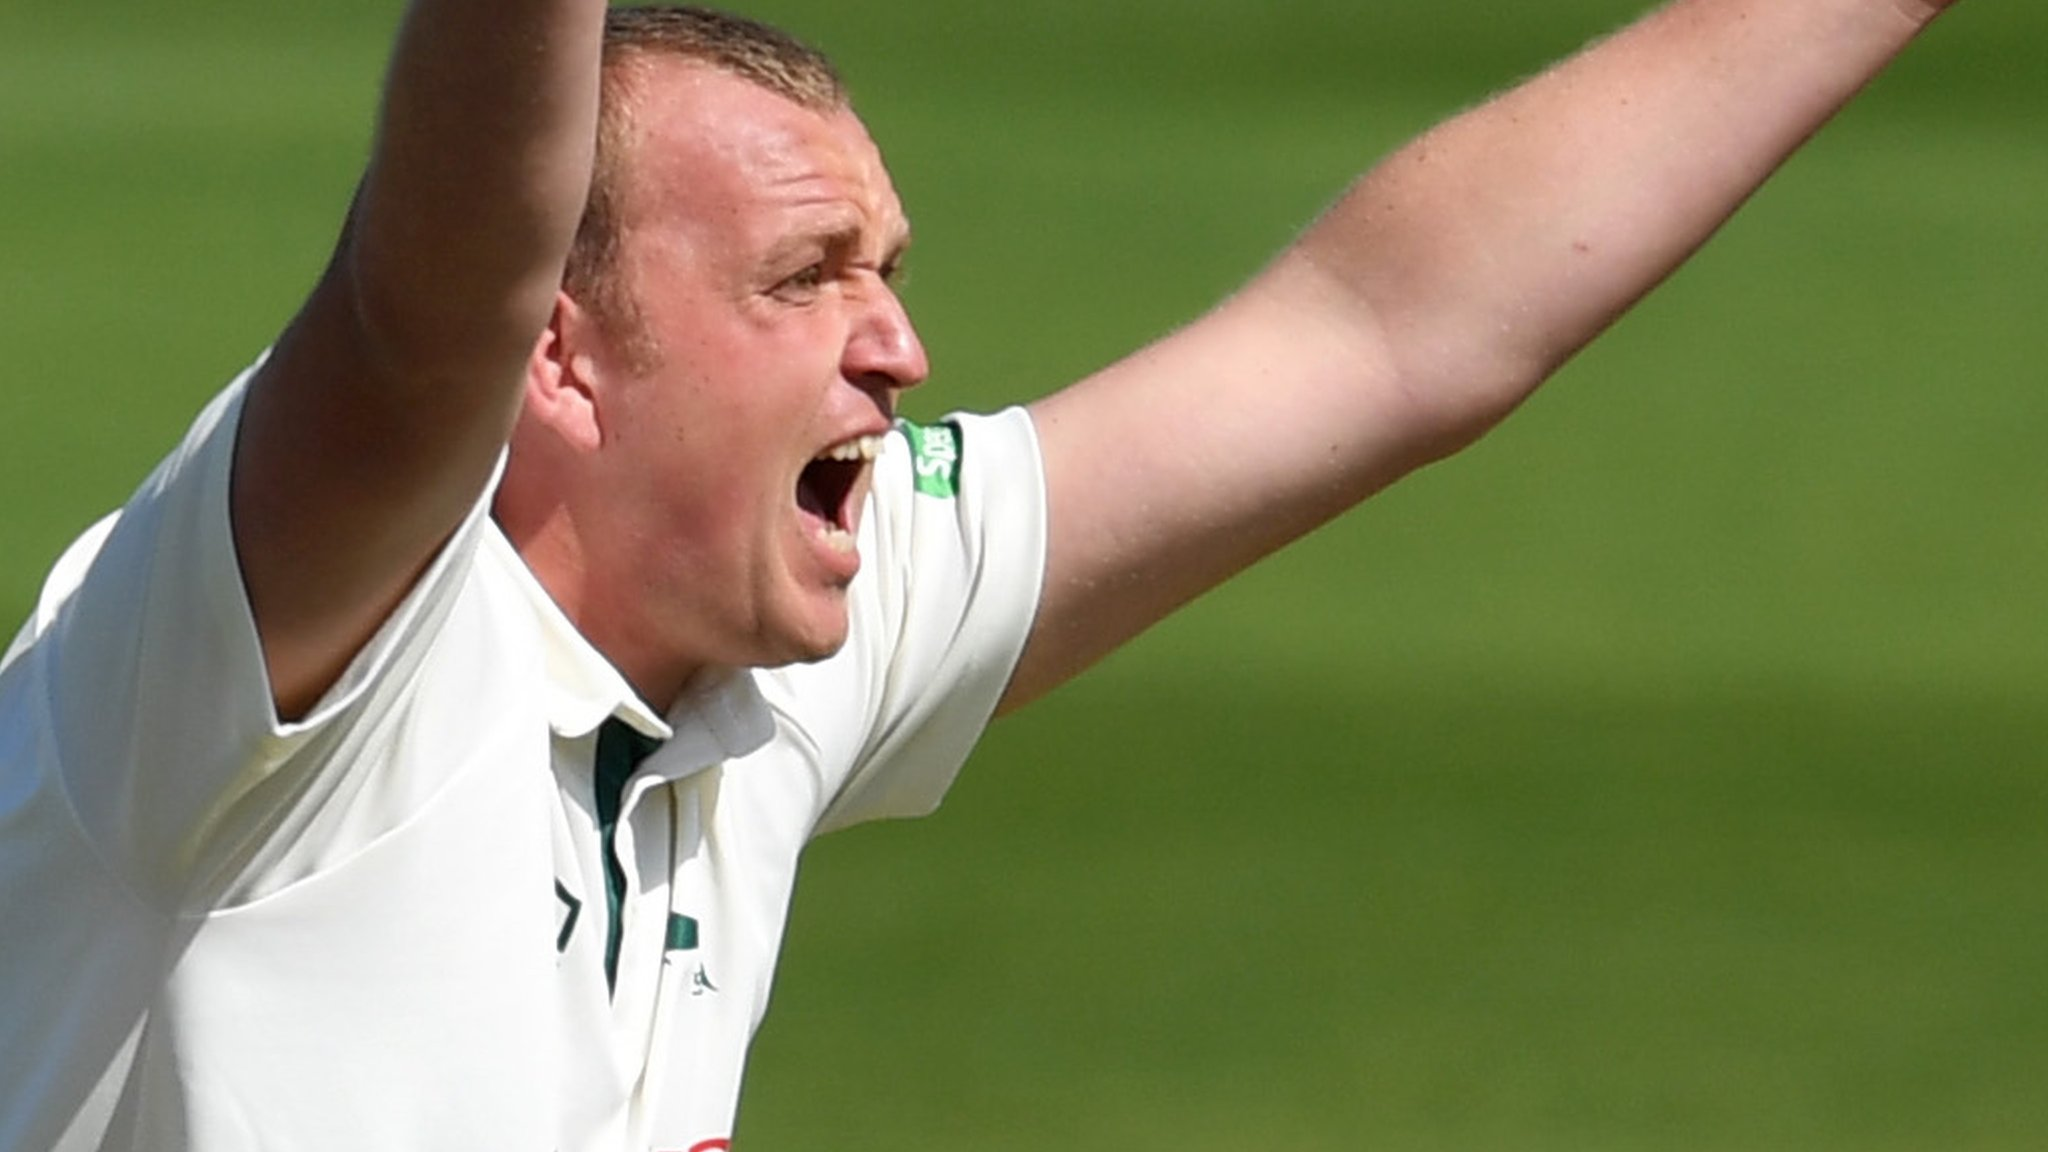 County Championship: Nottinghamshire seize control on day two in Essex